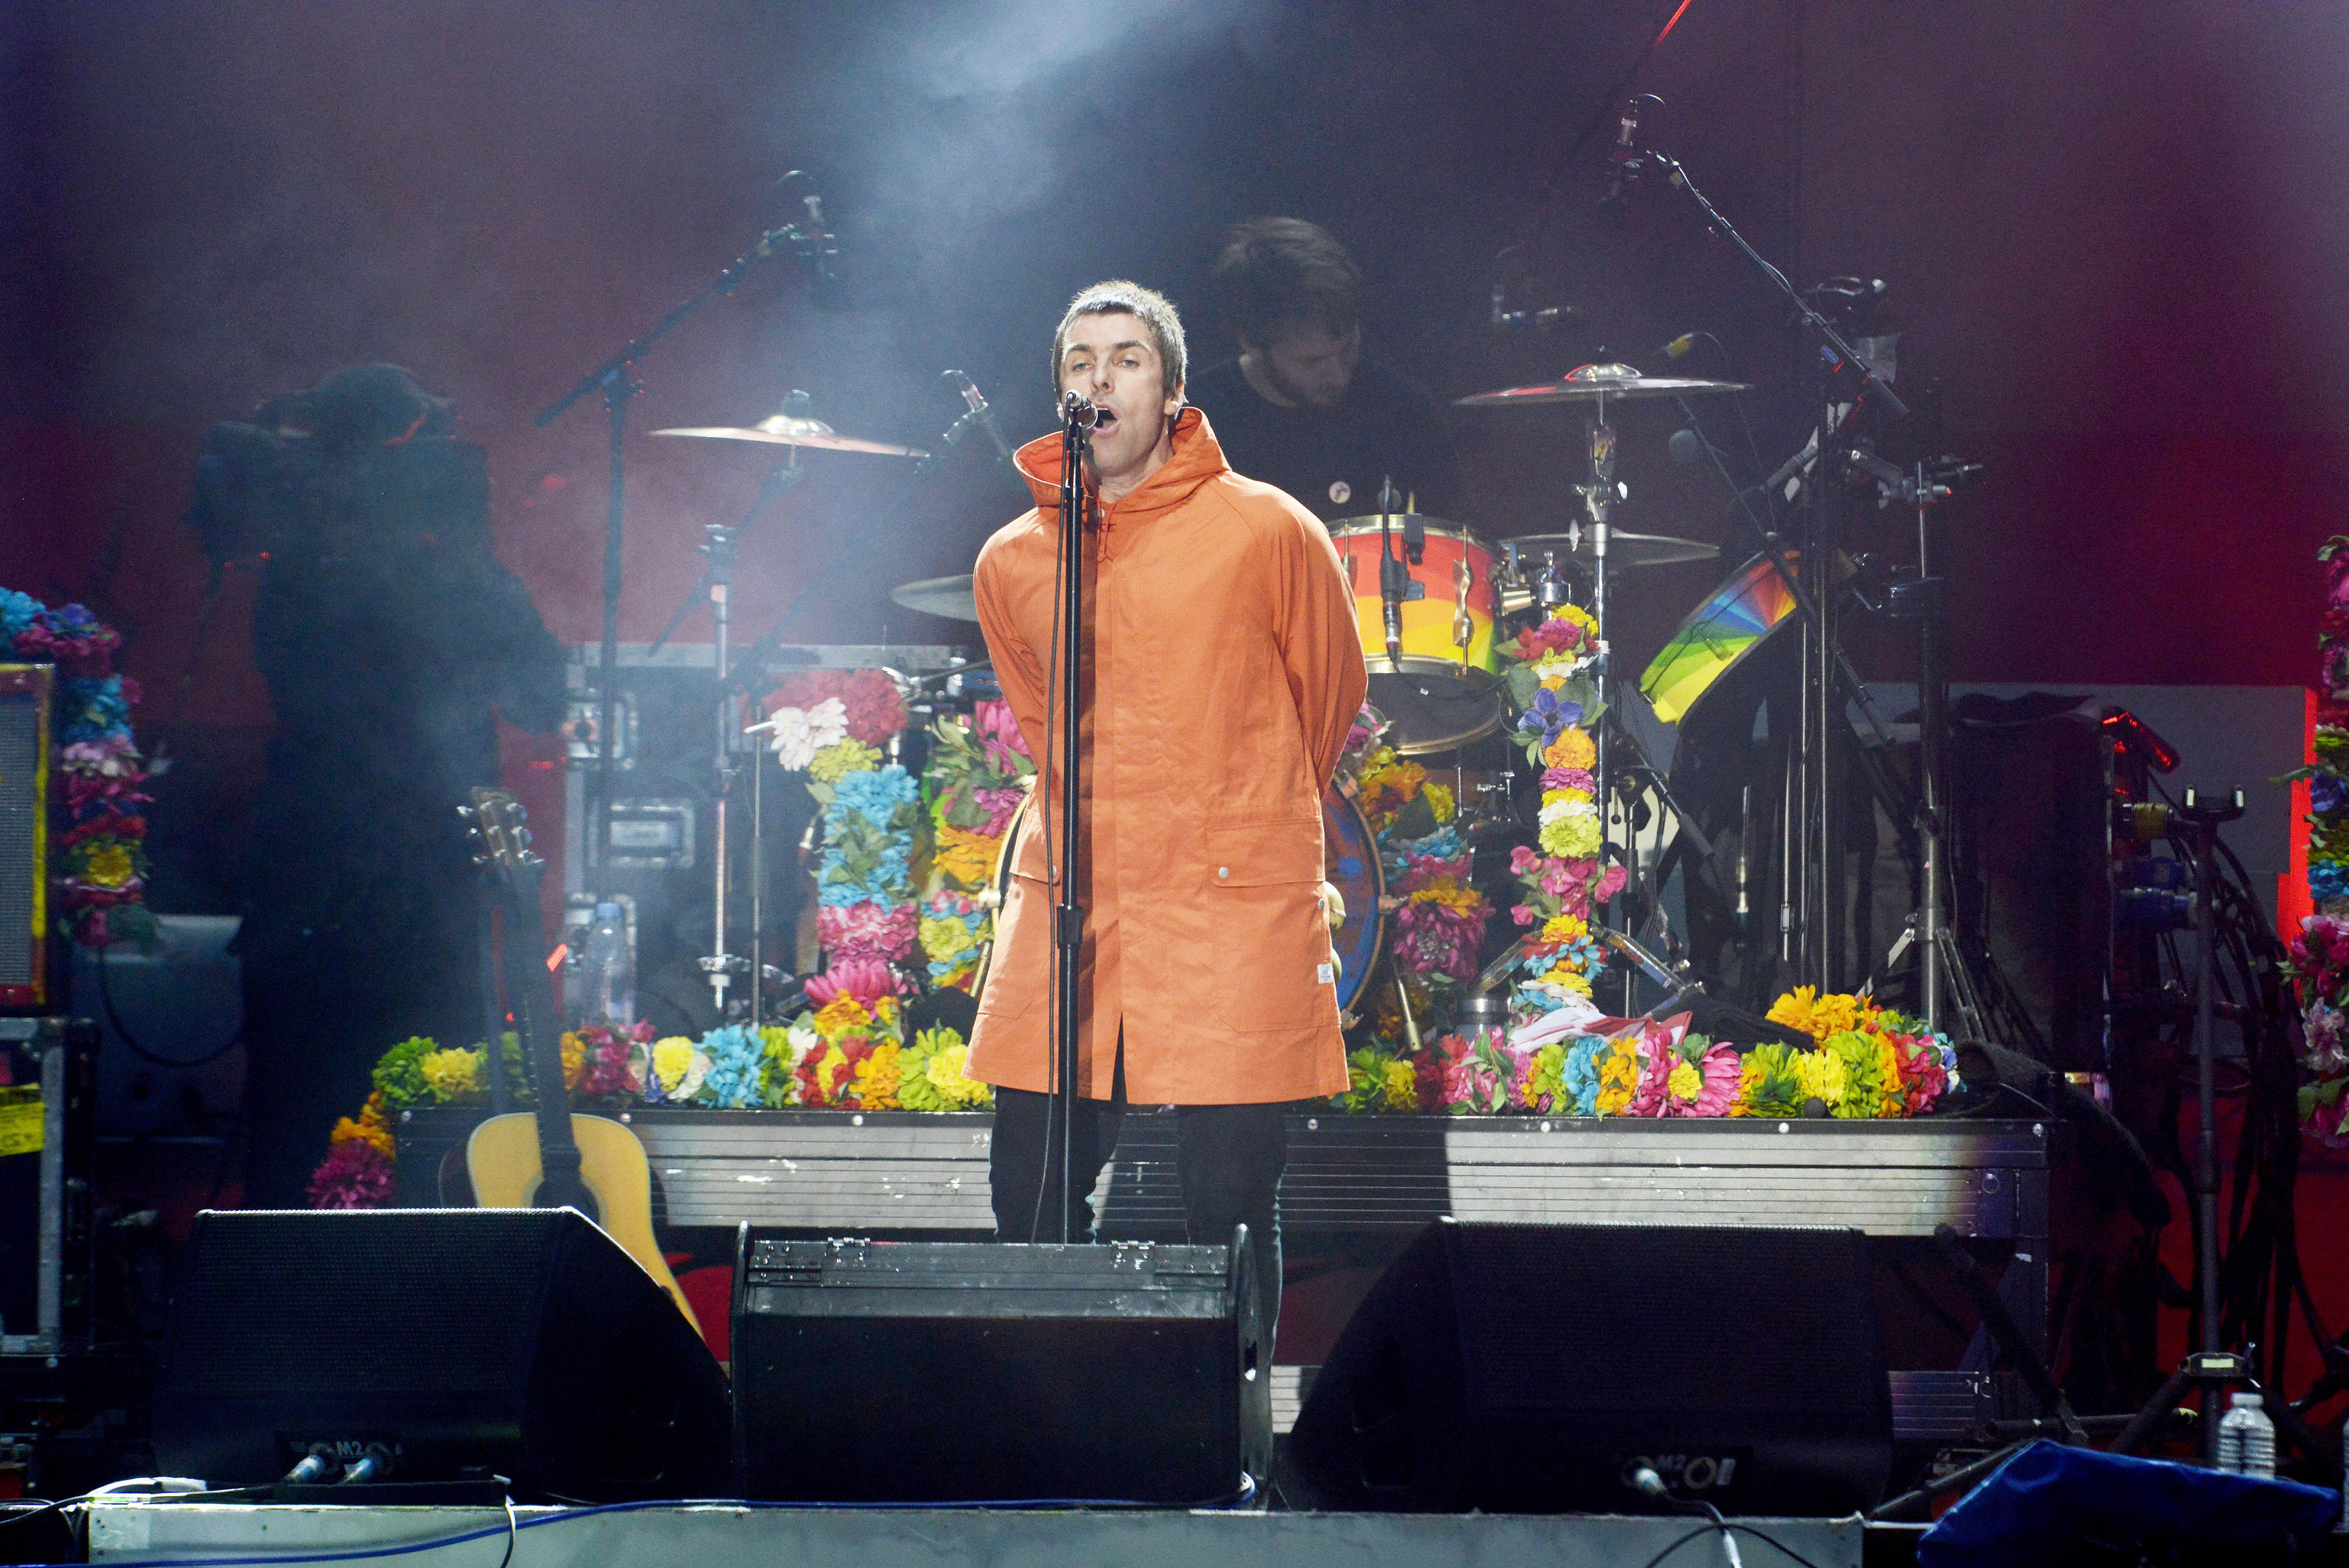 Liam Gallagher performing during the One Love Manchester benefit concert